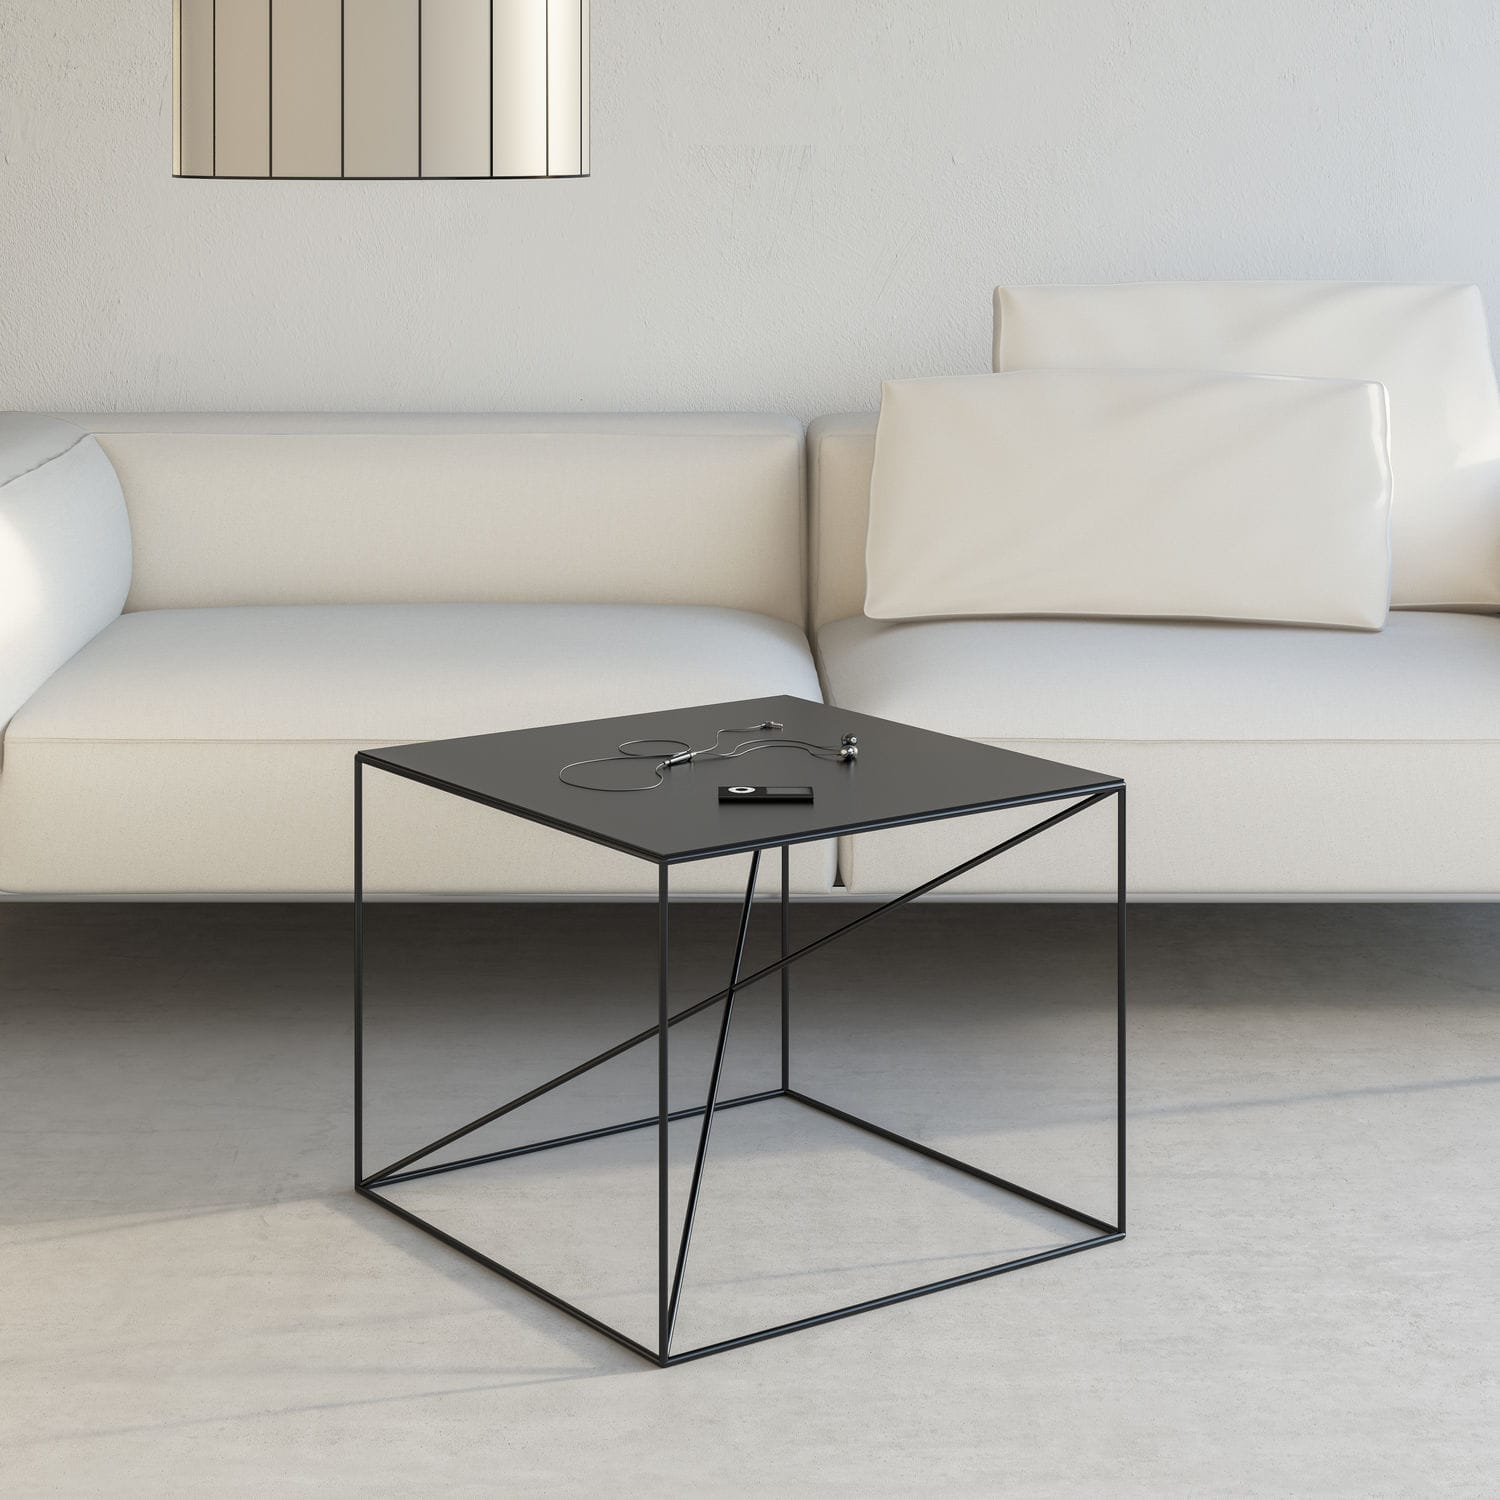 Contemporary coffee table powder coated steel rectangular